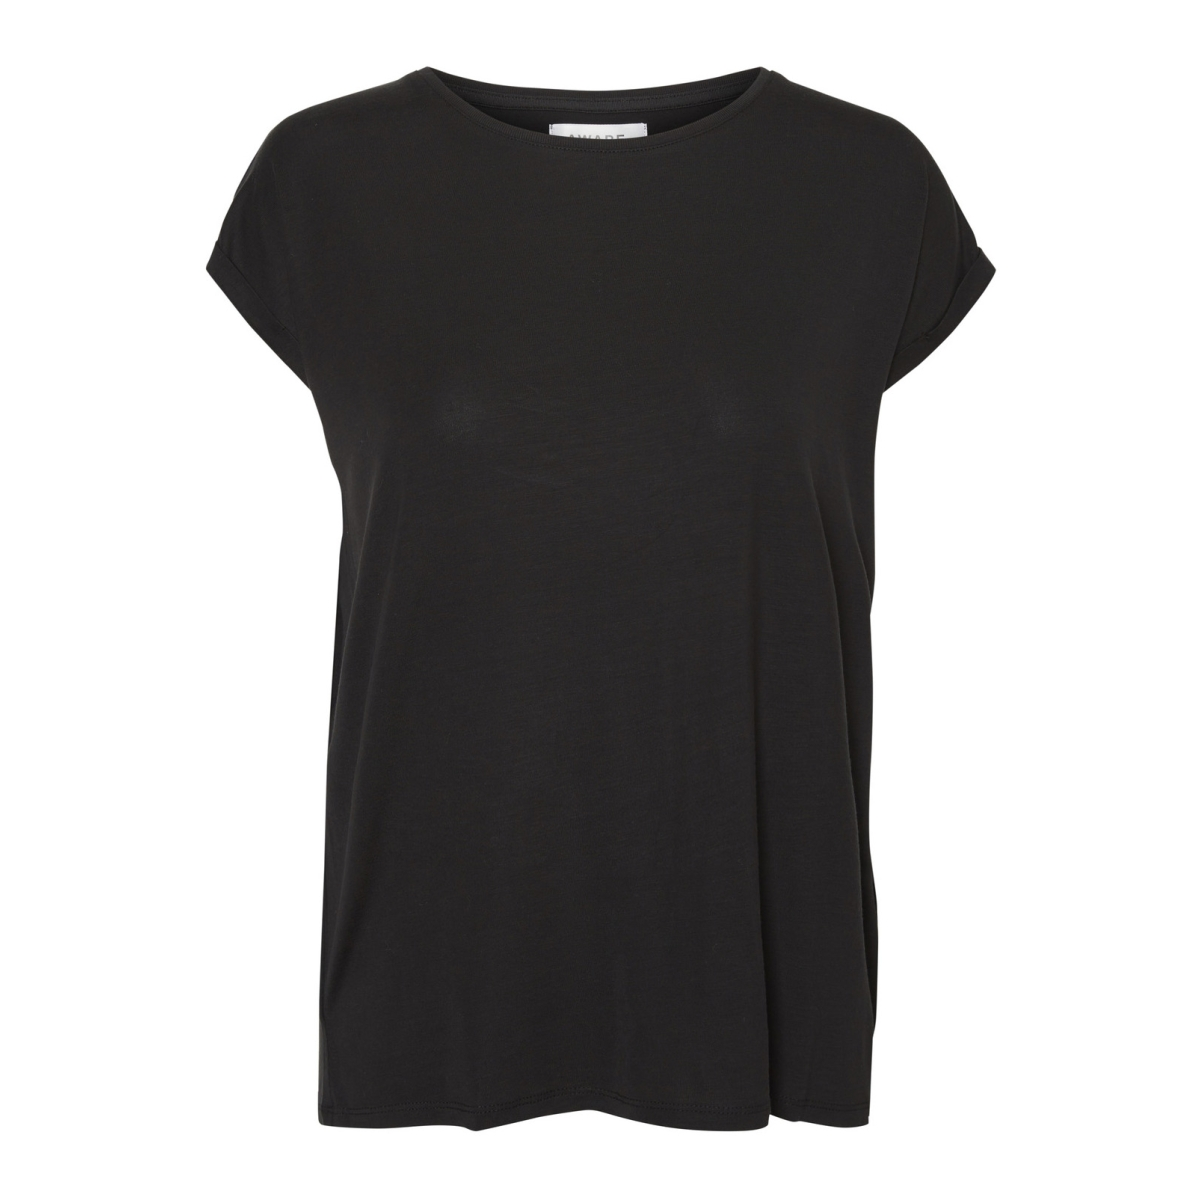 vmava plain ss top ga noos 10187159 vero moda t-shirt black